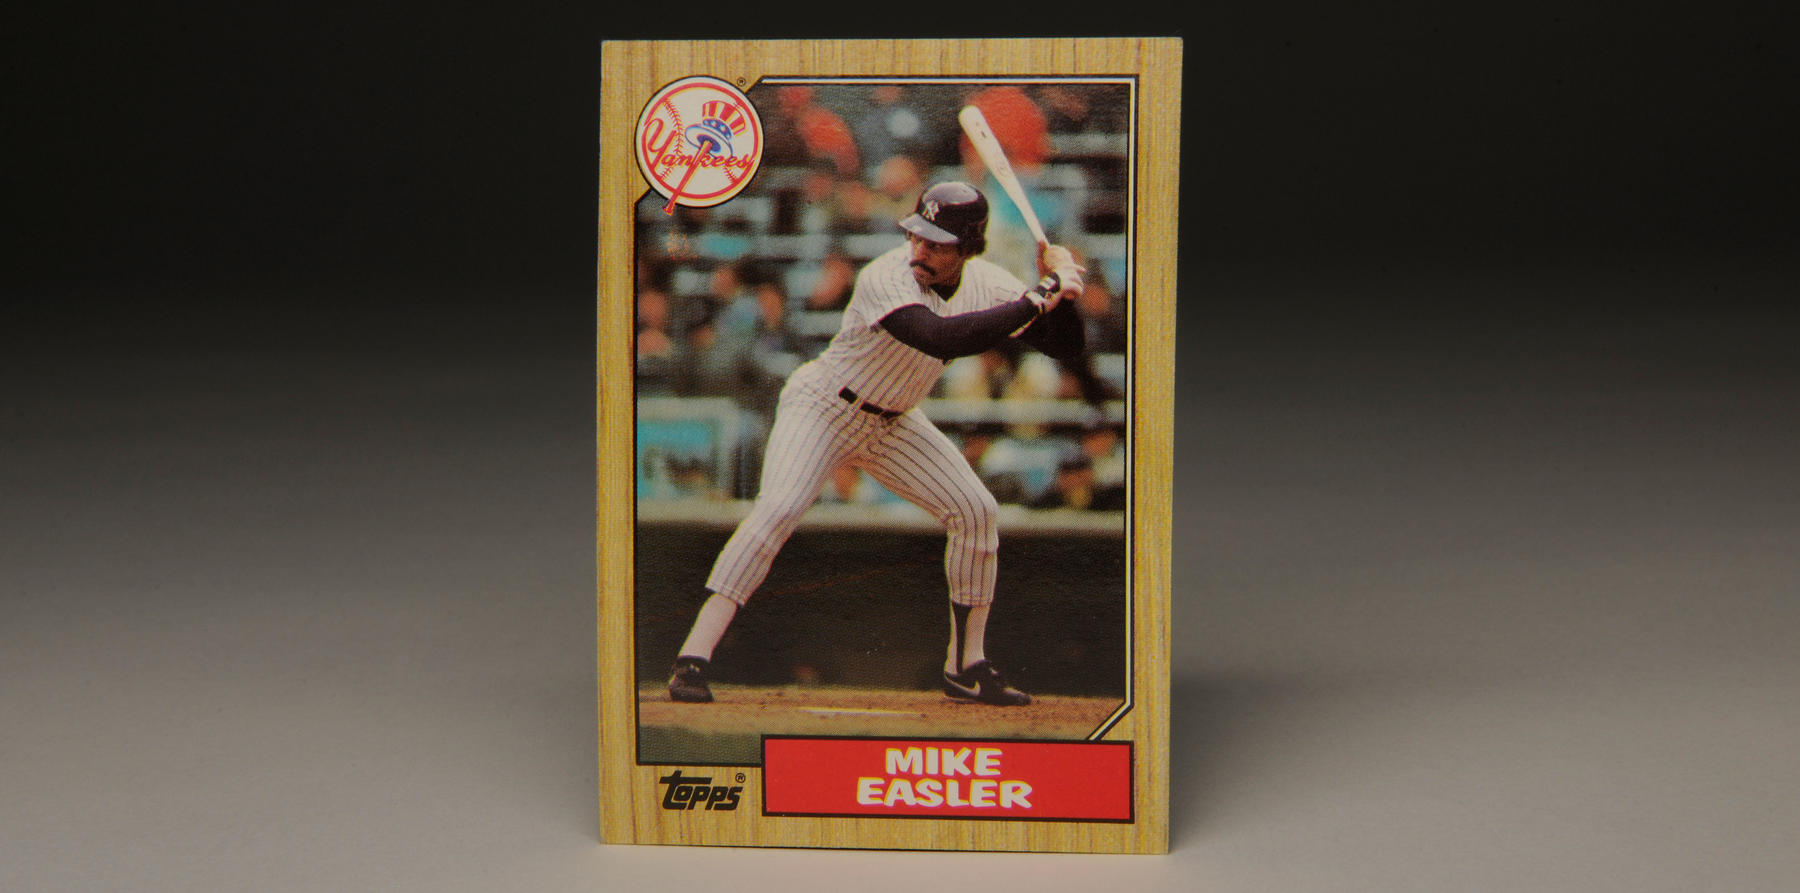 1987 Topps wood-bordered Mike Easler card. (Milo Stewart, Jr. / National Baseball Hall of Fame)